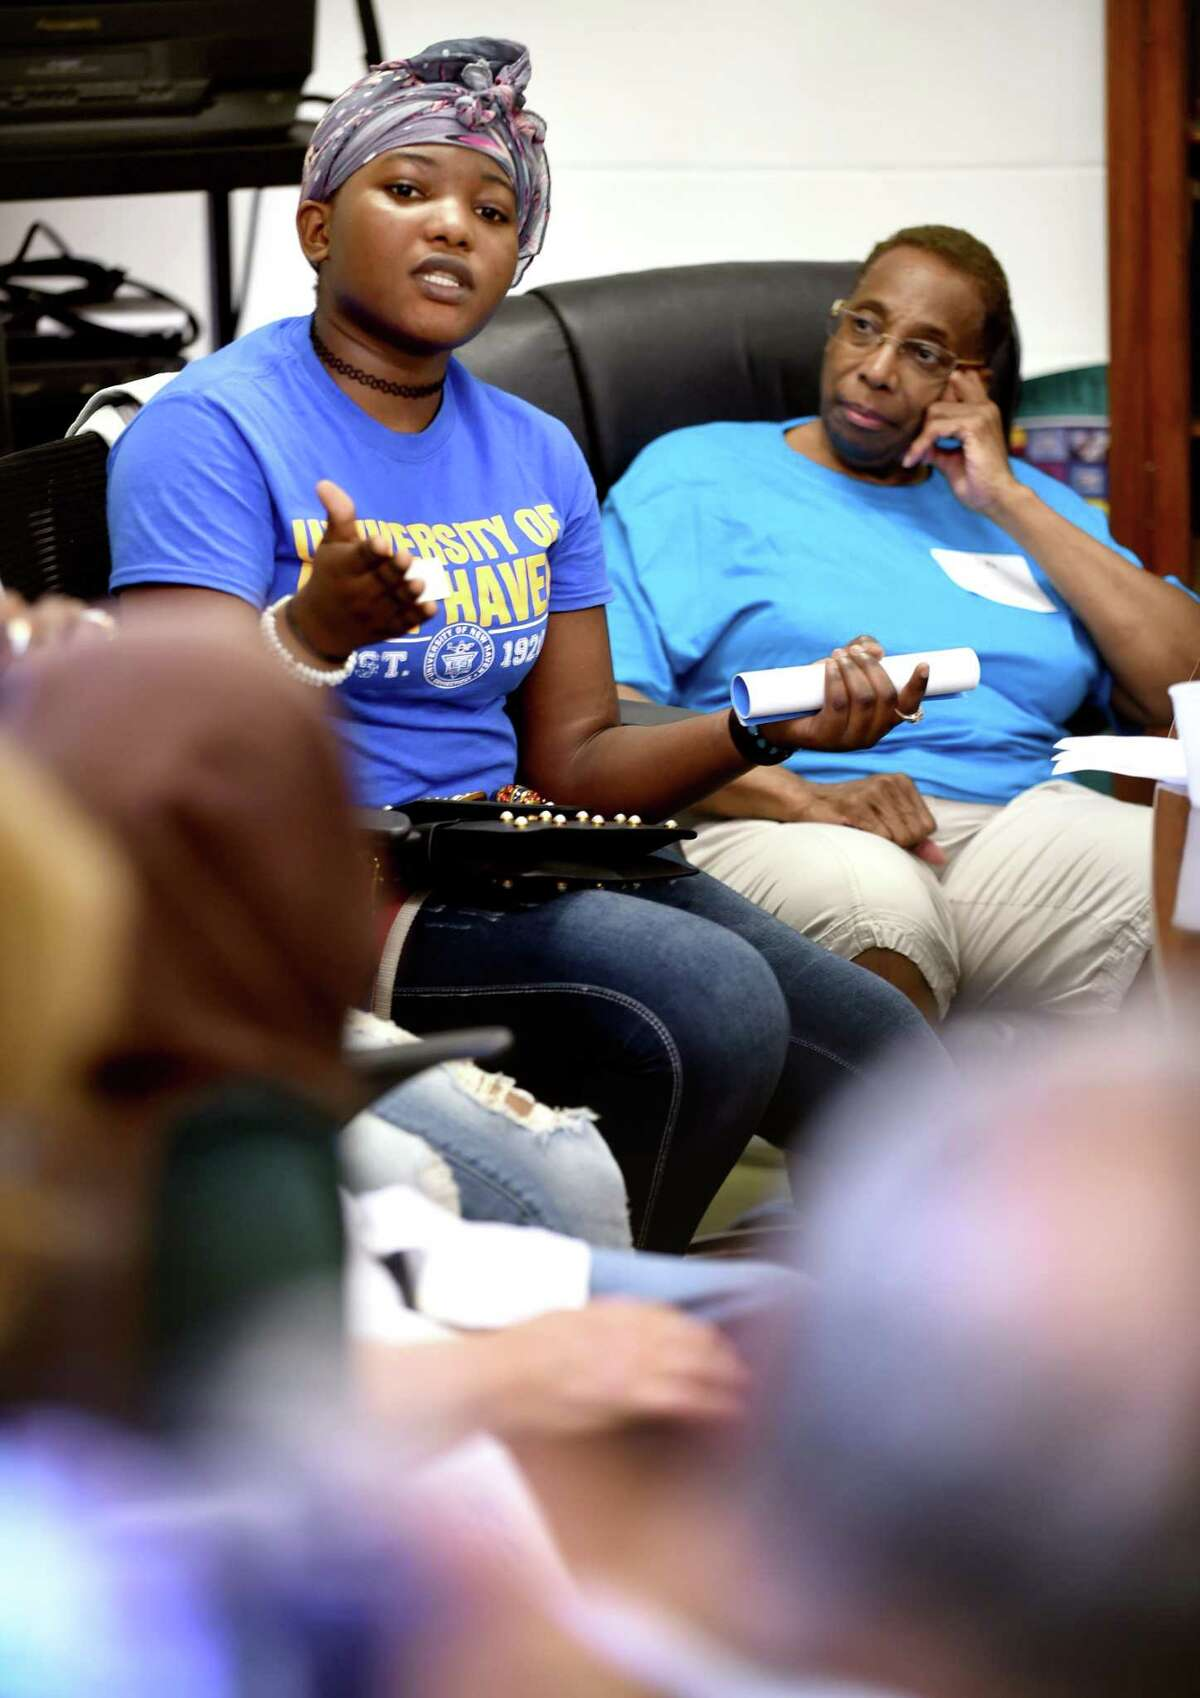 """Divine Mahoundi (left) of the Republic of Congo asks a question of senior pastor Frederick ?'Jerry?"""" Streets during a discussion about racial history in the United States at the Dixwell Avenue Congregational United Church of Christ in New Haven on June 29, 2018."""